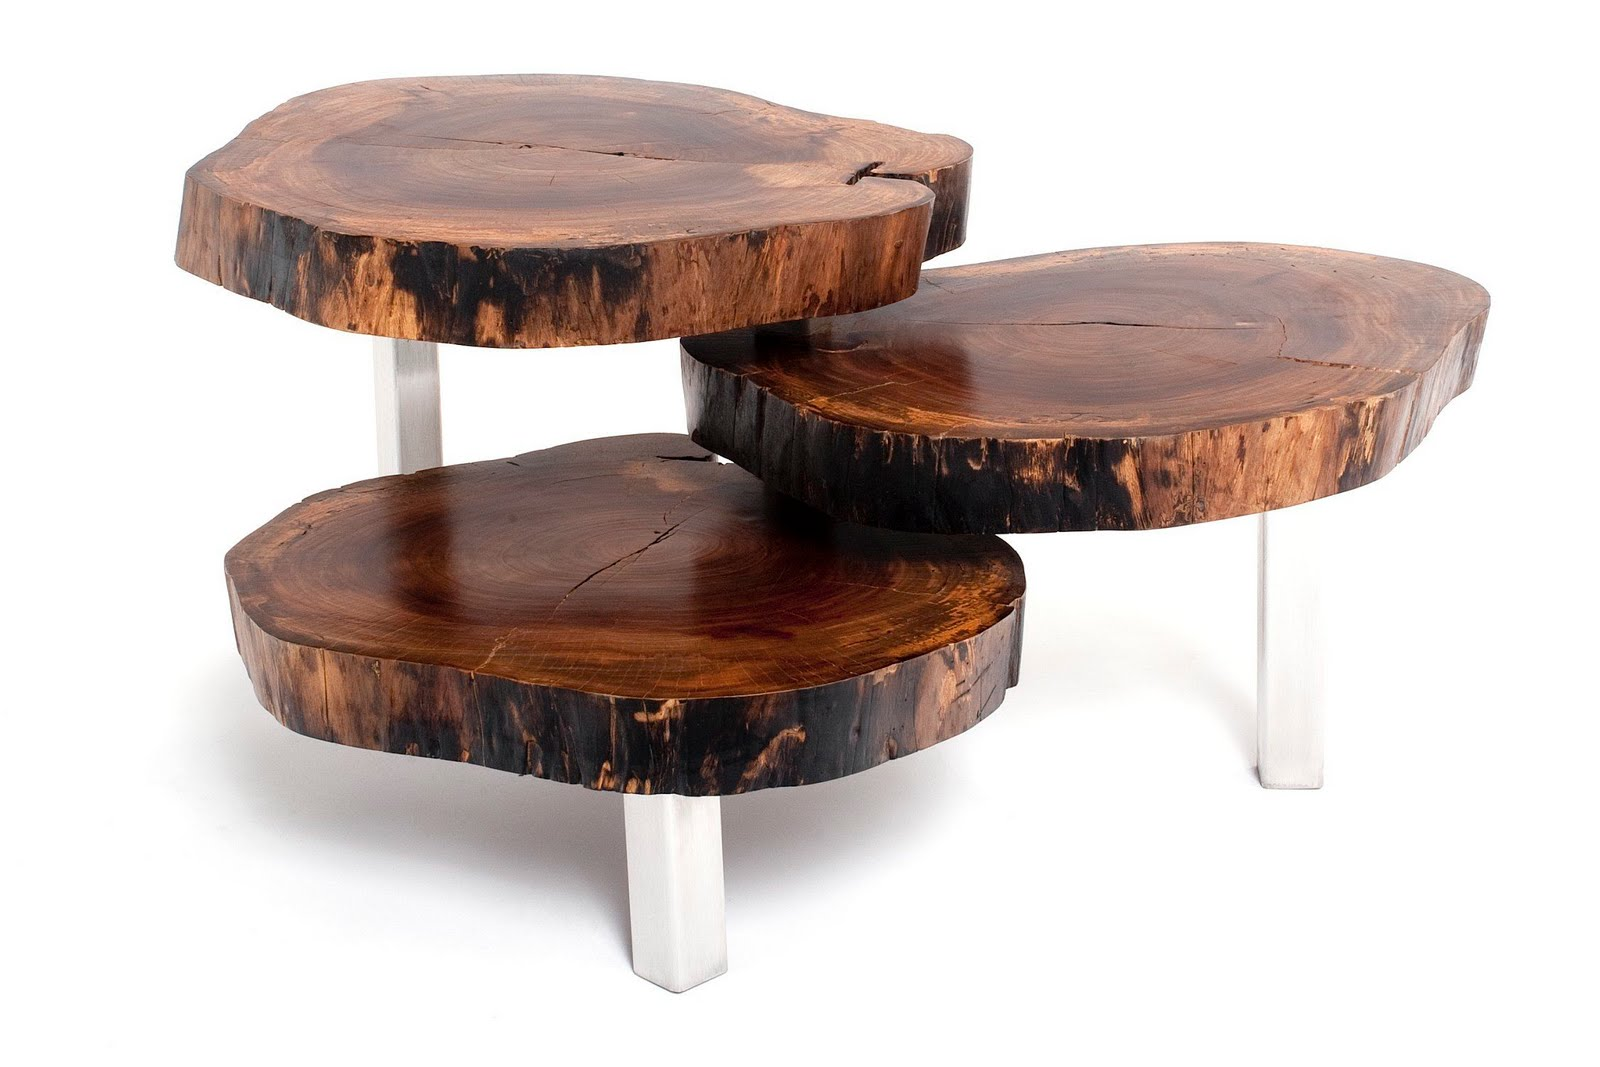 wood tables at the galleria. Black Bedroom Furniture Sets. Home Design Ideas